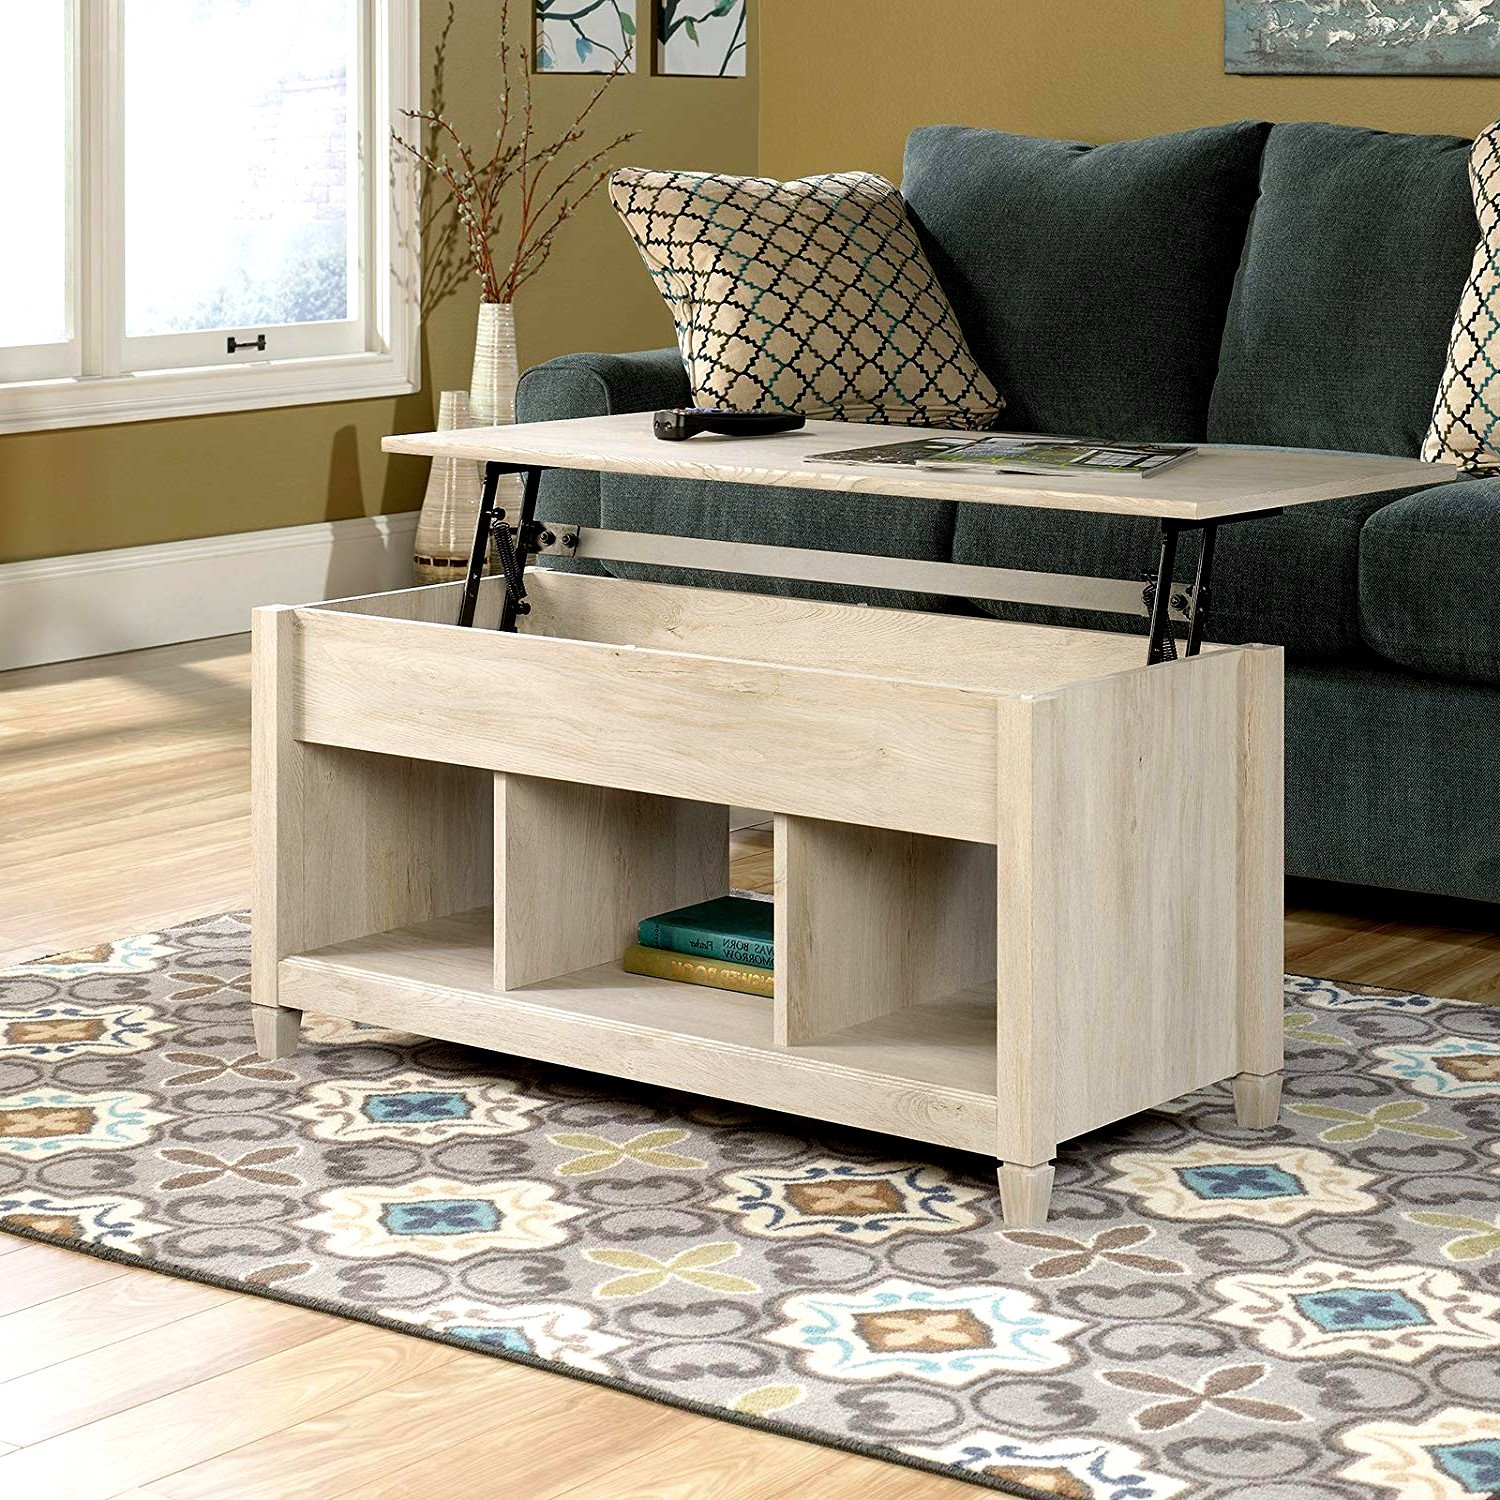 Fine Amazon Com Lift Top Coffee Table With Hidden Storage And 3 Gmtry Best Dining Table And Chair Ideas Images Gmtryco